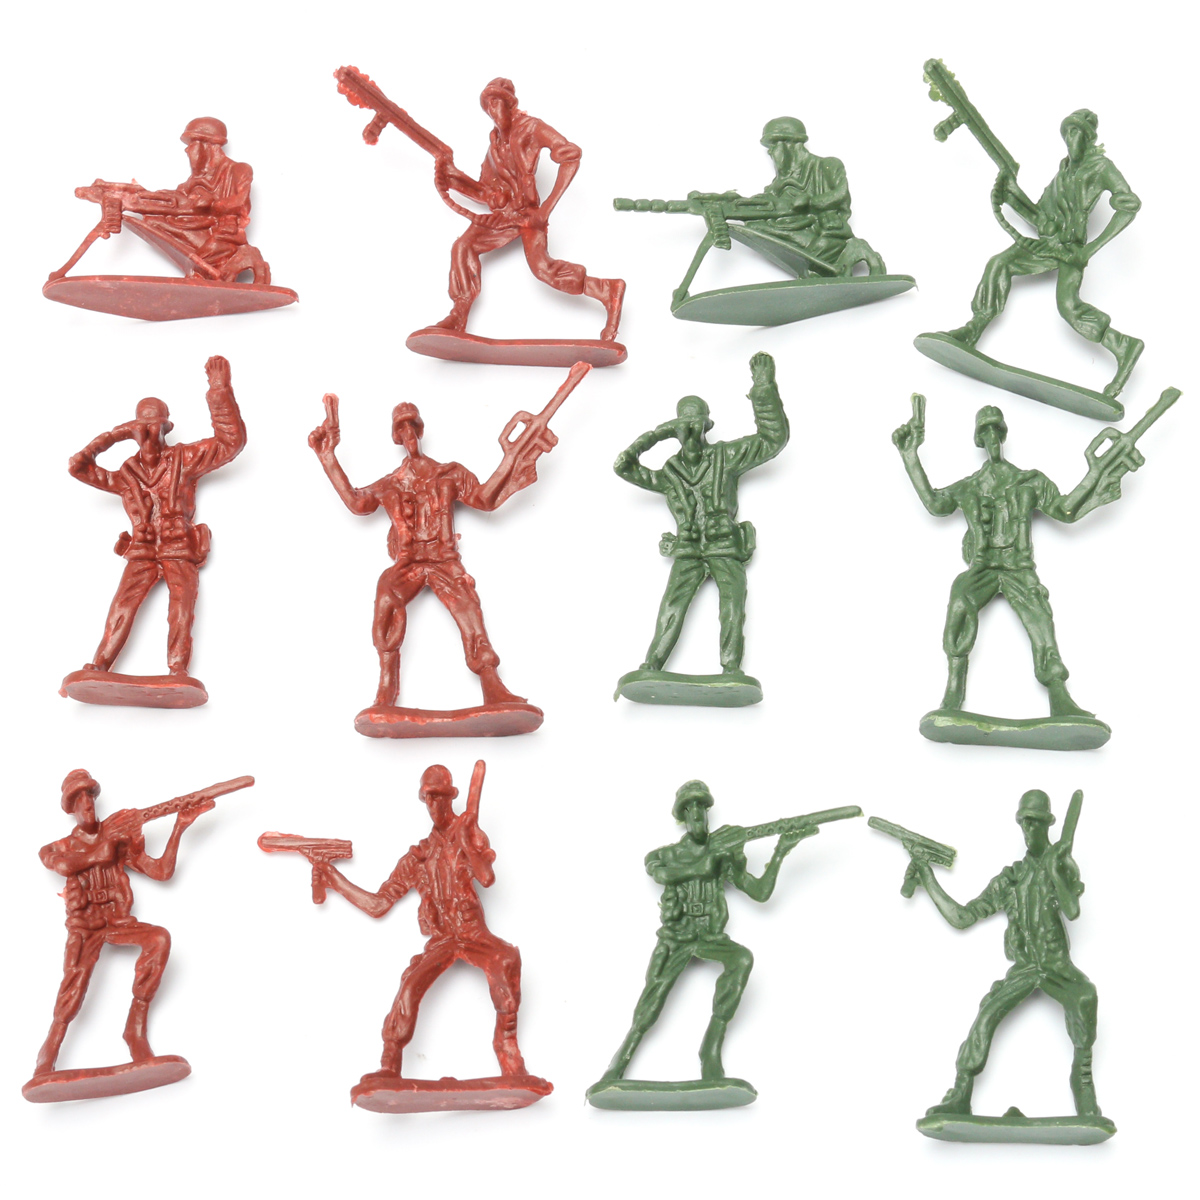 270pcs military soldiers toy kit army men figures accessories model for sand b ebay. Black Bedroom Furniture Sets. Home Design Ideas